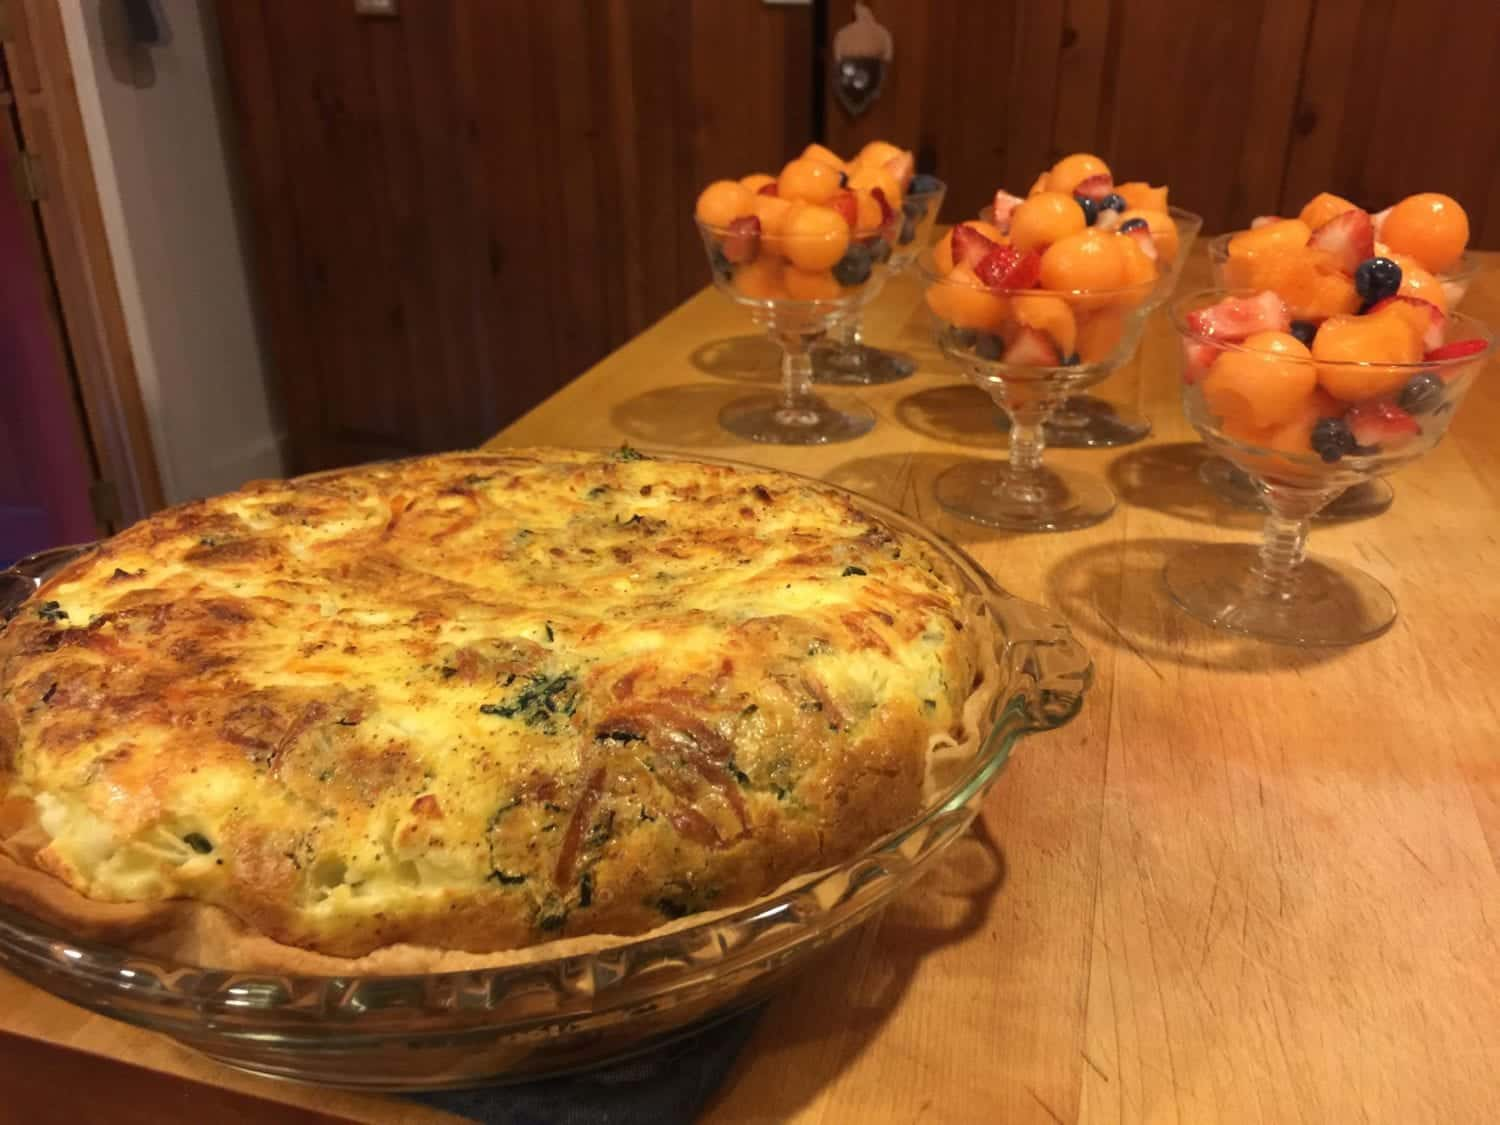 Mediterranean Quiche and fruit in parfait glasses... breakfast at the 1795 Acorn Inn in Canandaigua is always included in your stay